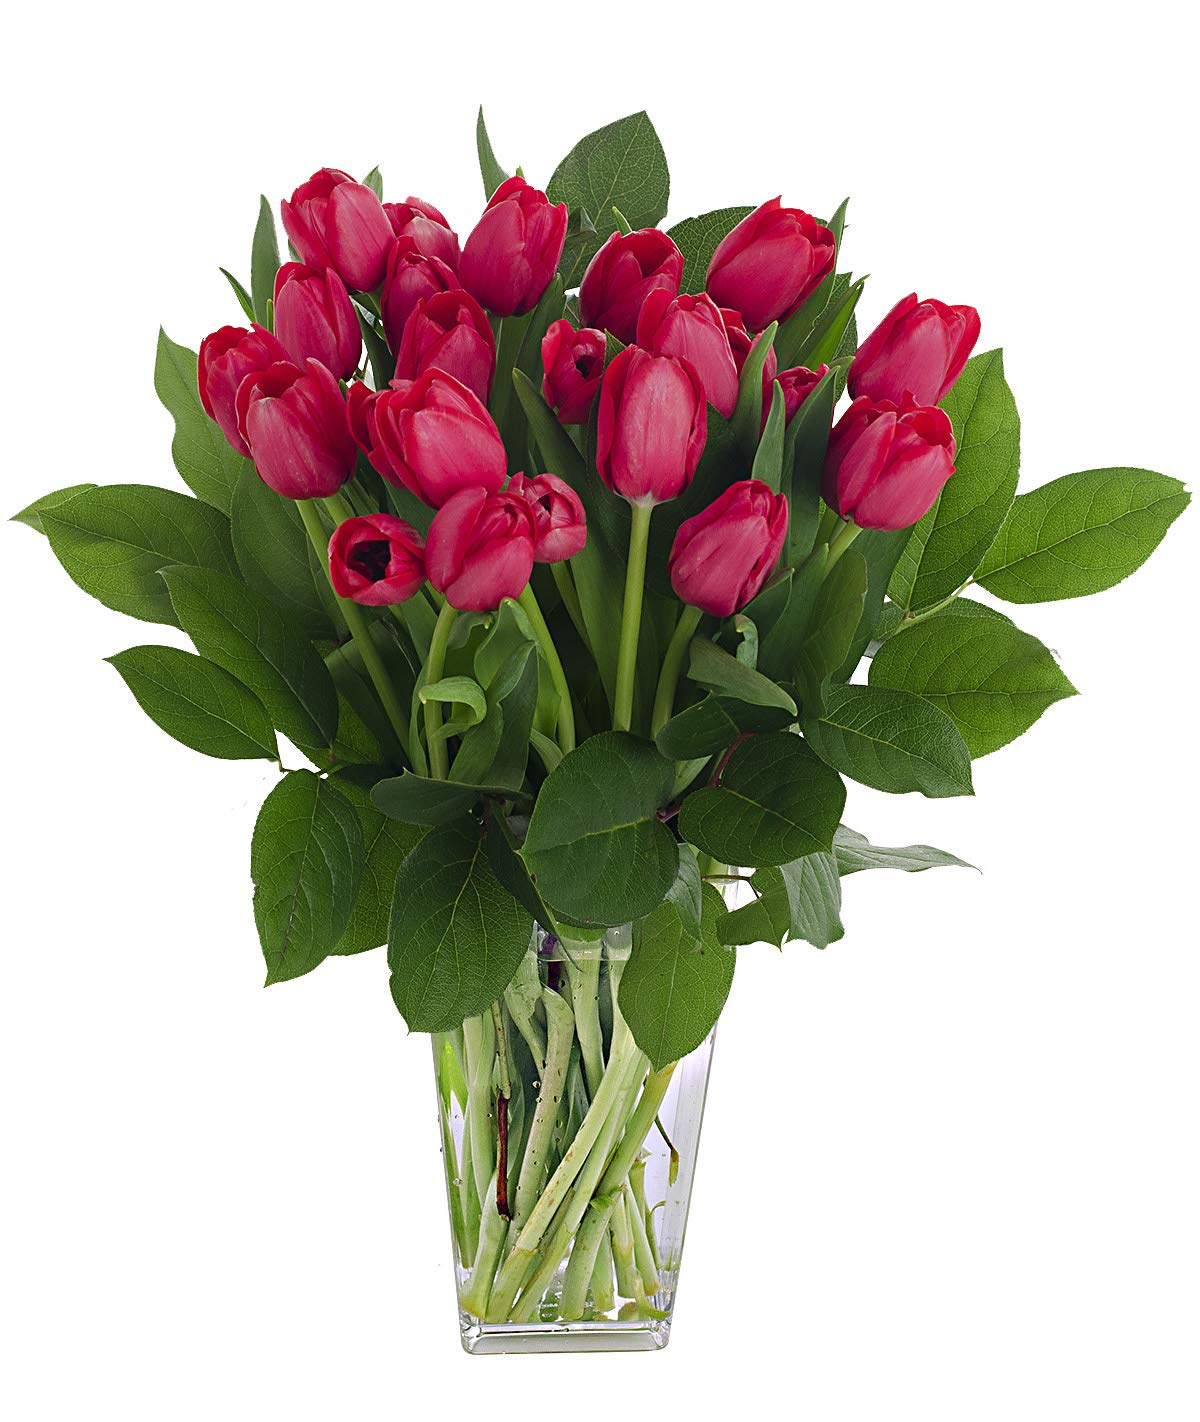 Stargazer Barn - Passion Bouquet - 2 Dozen Red Tulips With Clear Vase